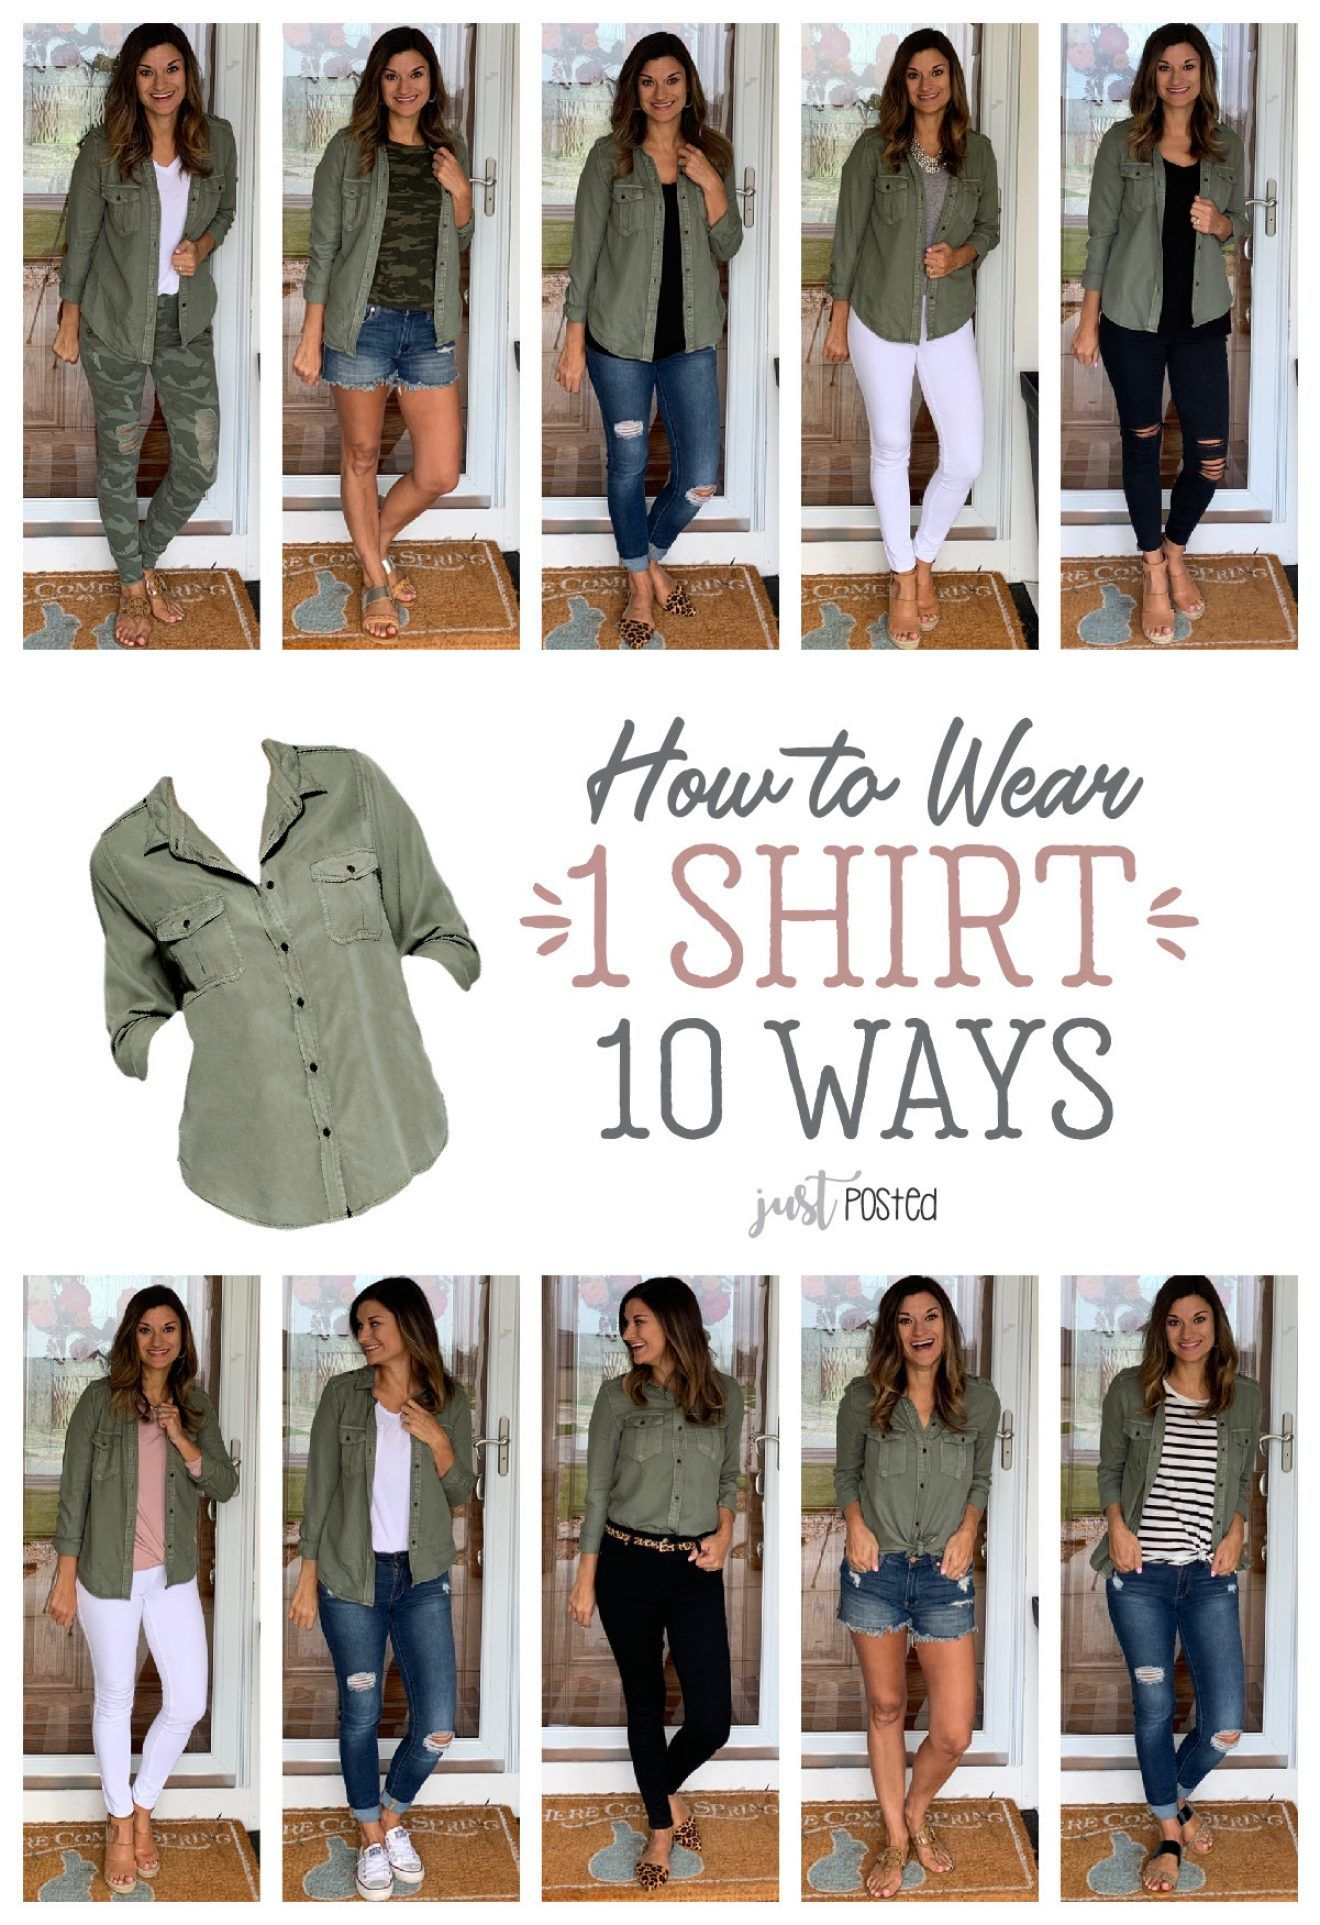 How to Wear One Green Shirt Ten Ways – Just Posted. Perfect piece for a capsule wardrobe and it can easily be dressed up or down! It's under $20 and available in a few different colors! #howtowear